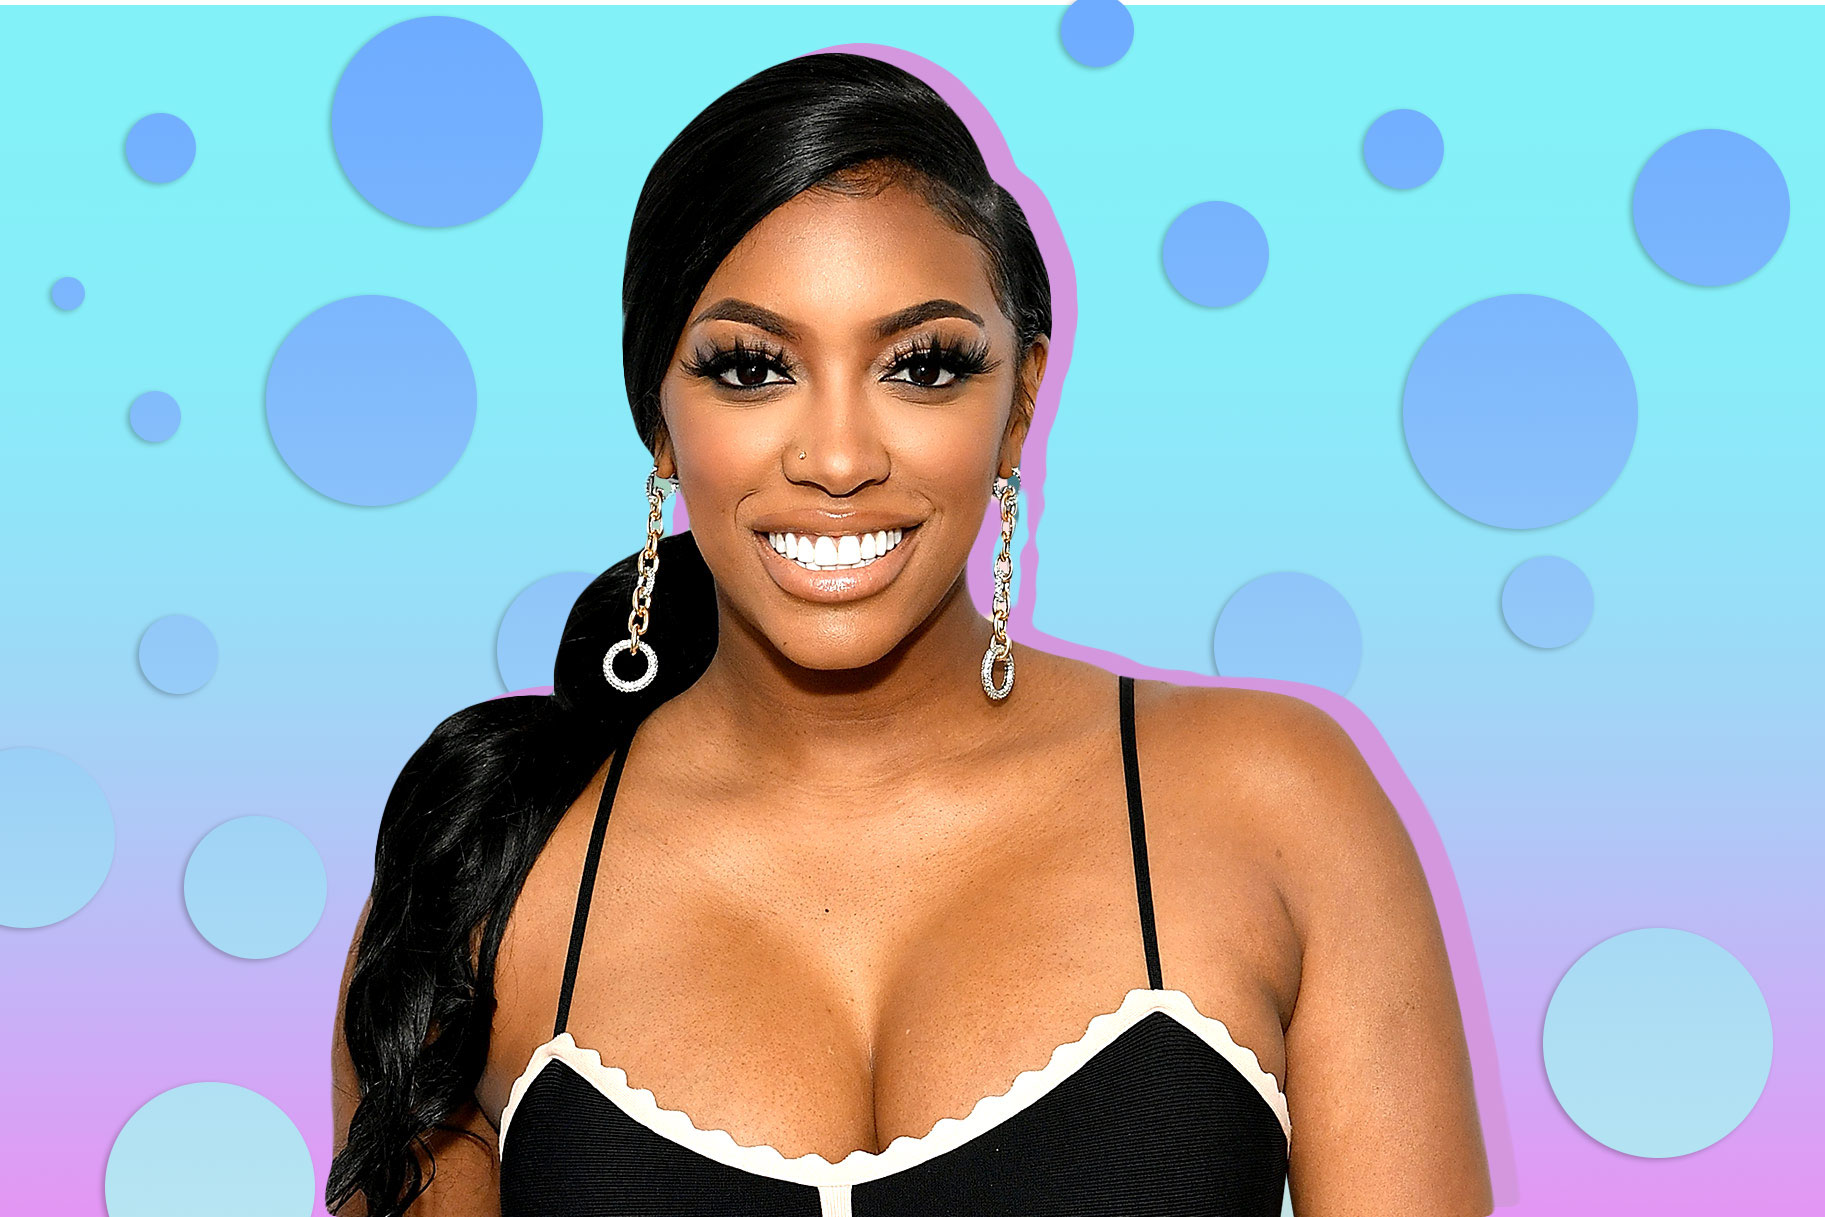 Porsha Williams' Chatroom Continues With At Least 13 Episodes